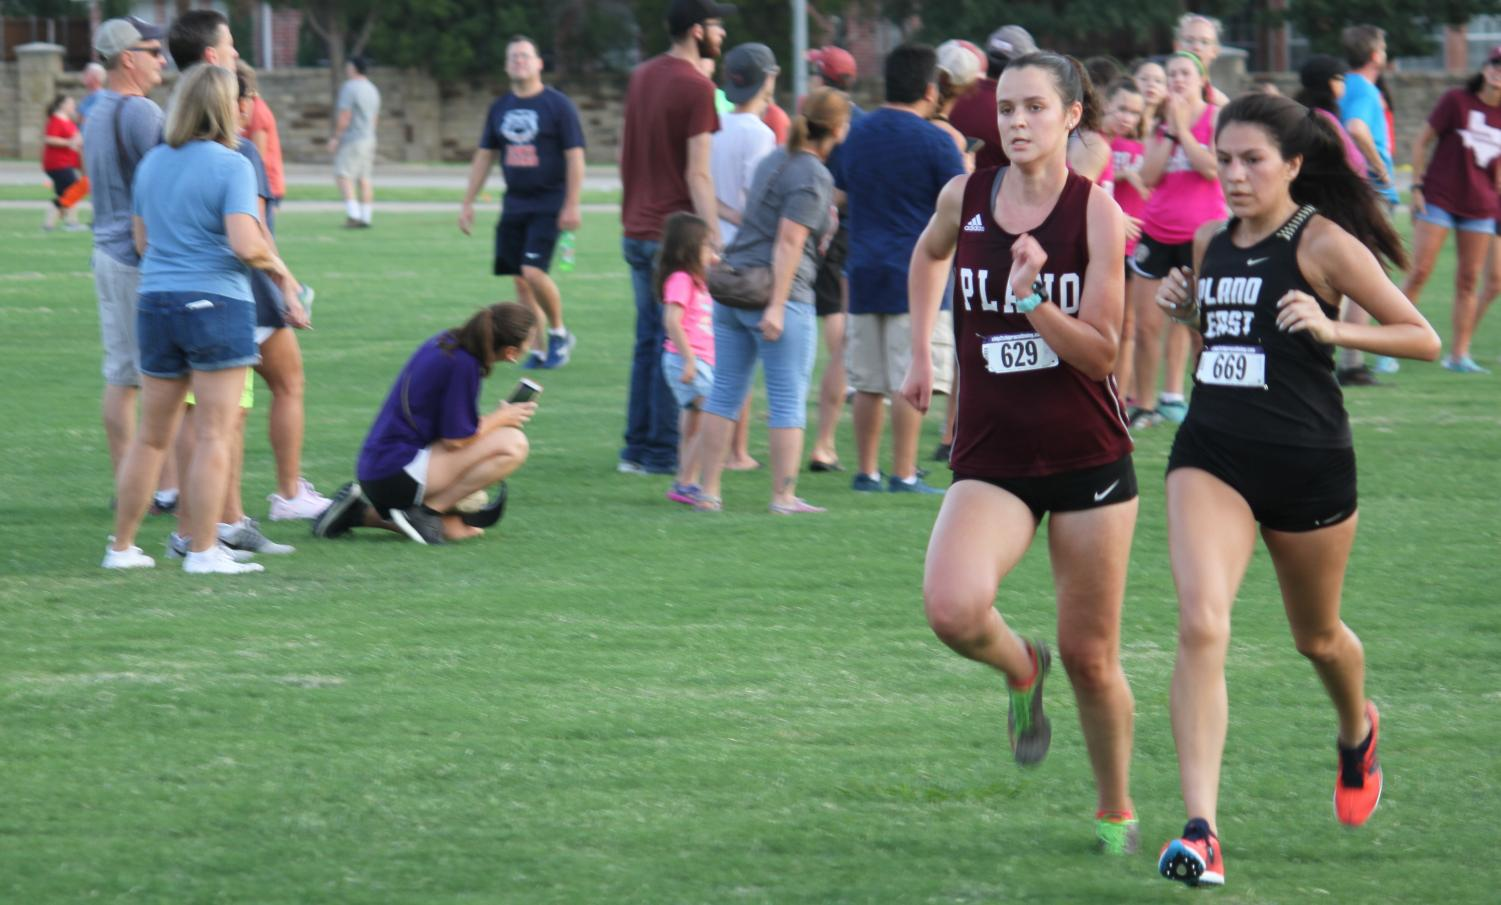 Brooke Dixon pushes herself to get past a runner for Plano East at the Plano Invitational Cross Country meet.